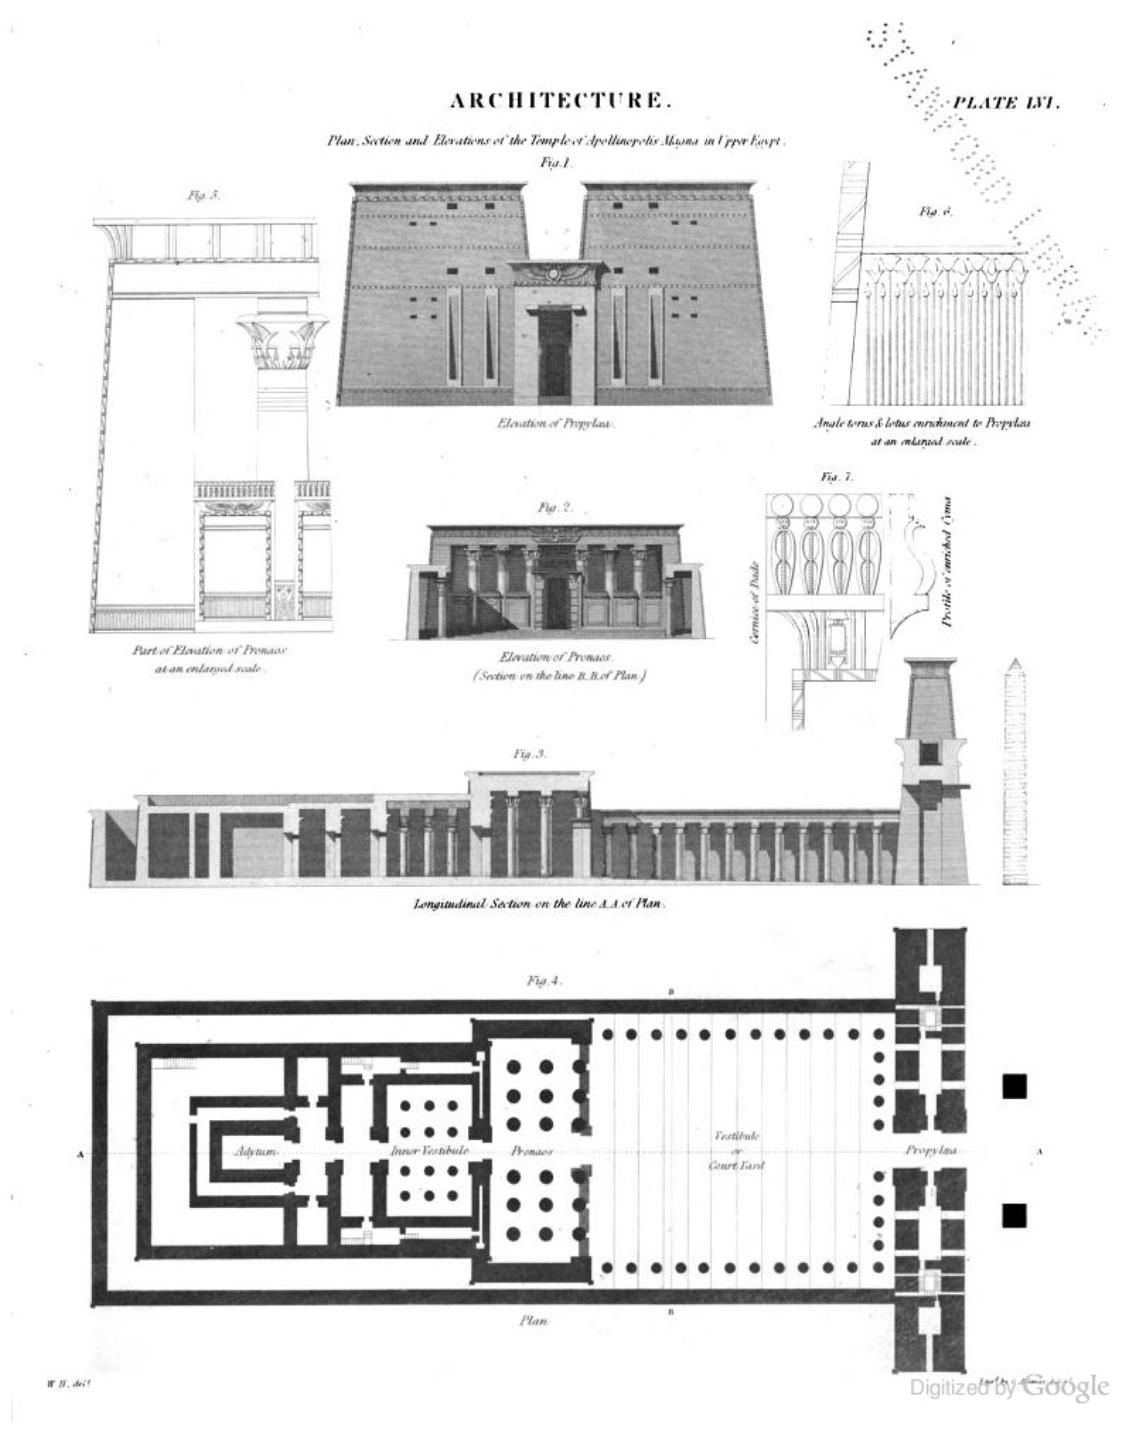 Ping Mall Plan Elevation Section : Plan section and elevations of the temple